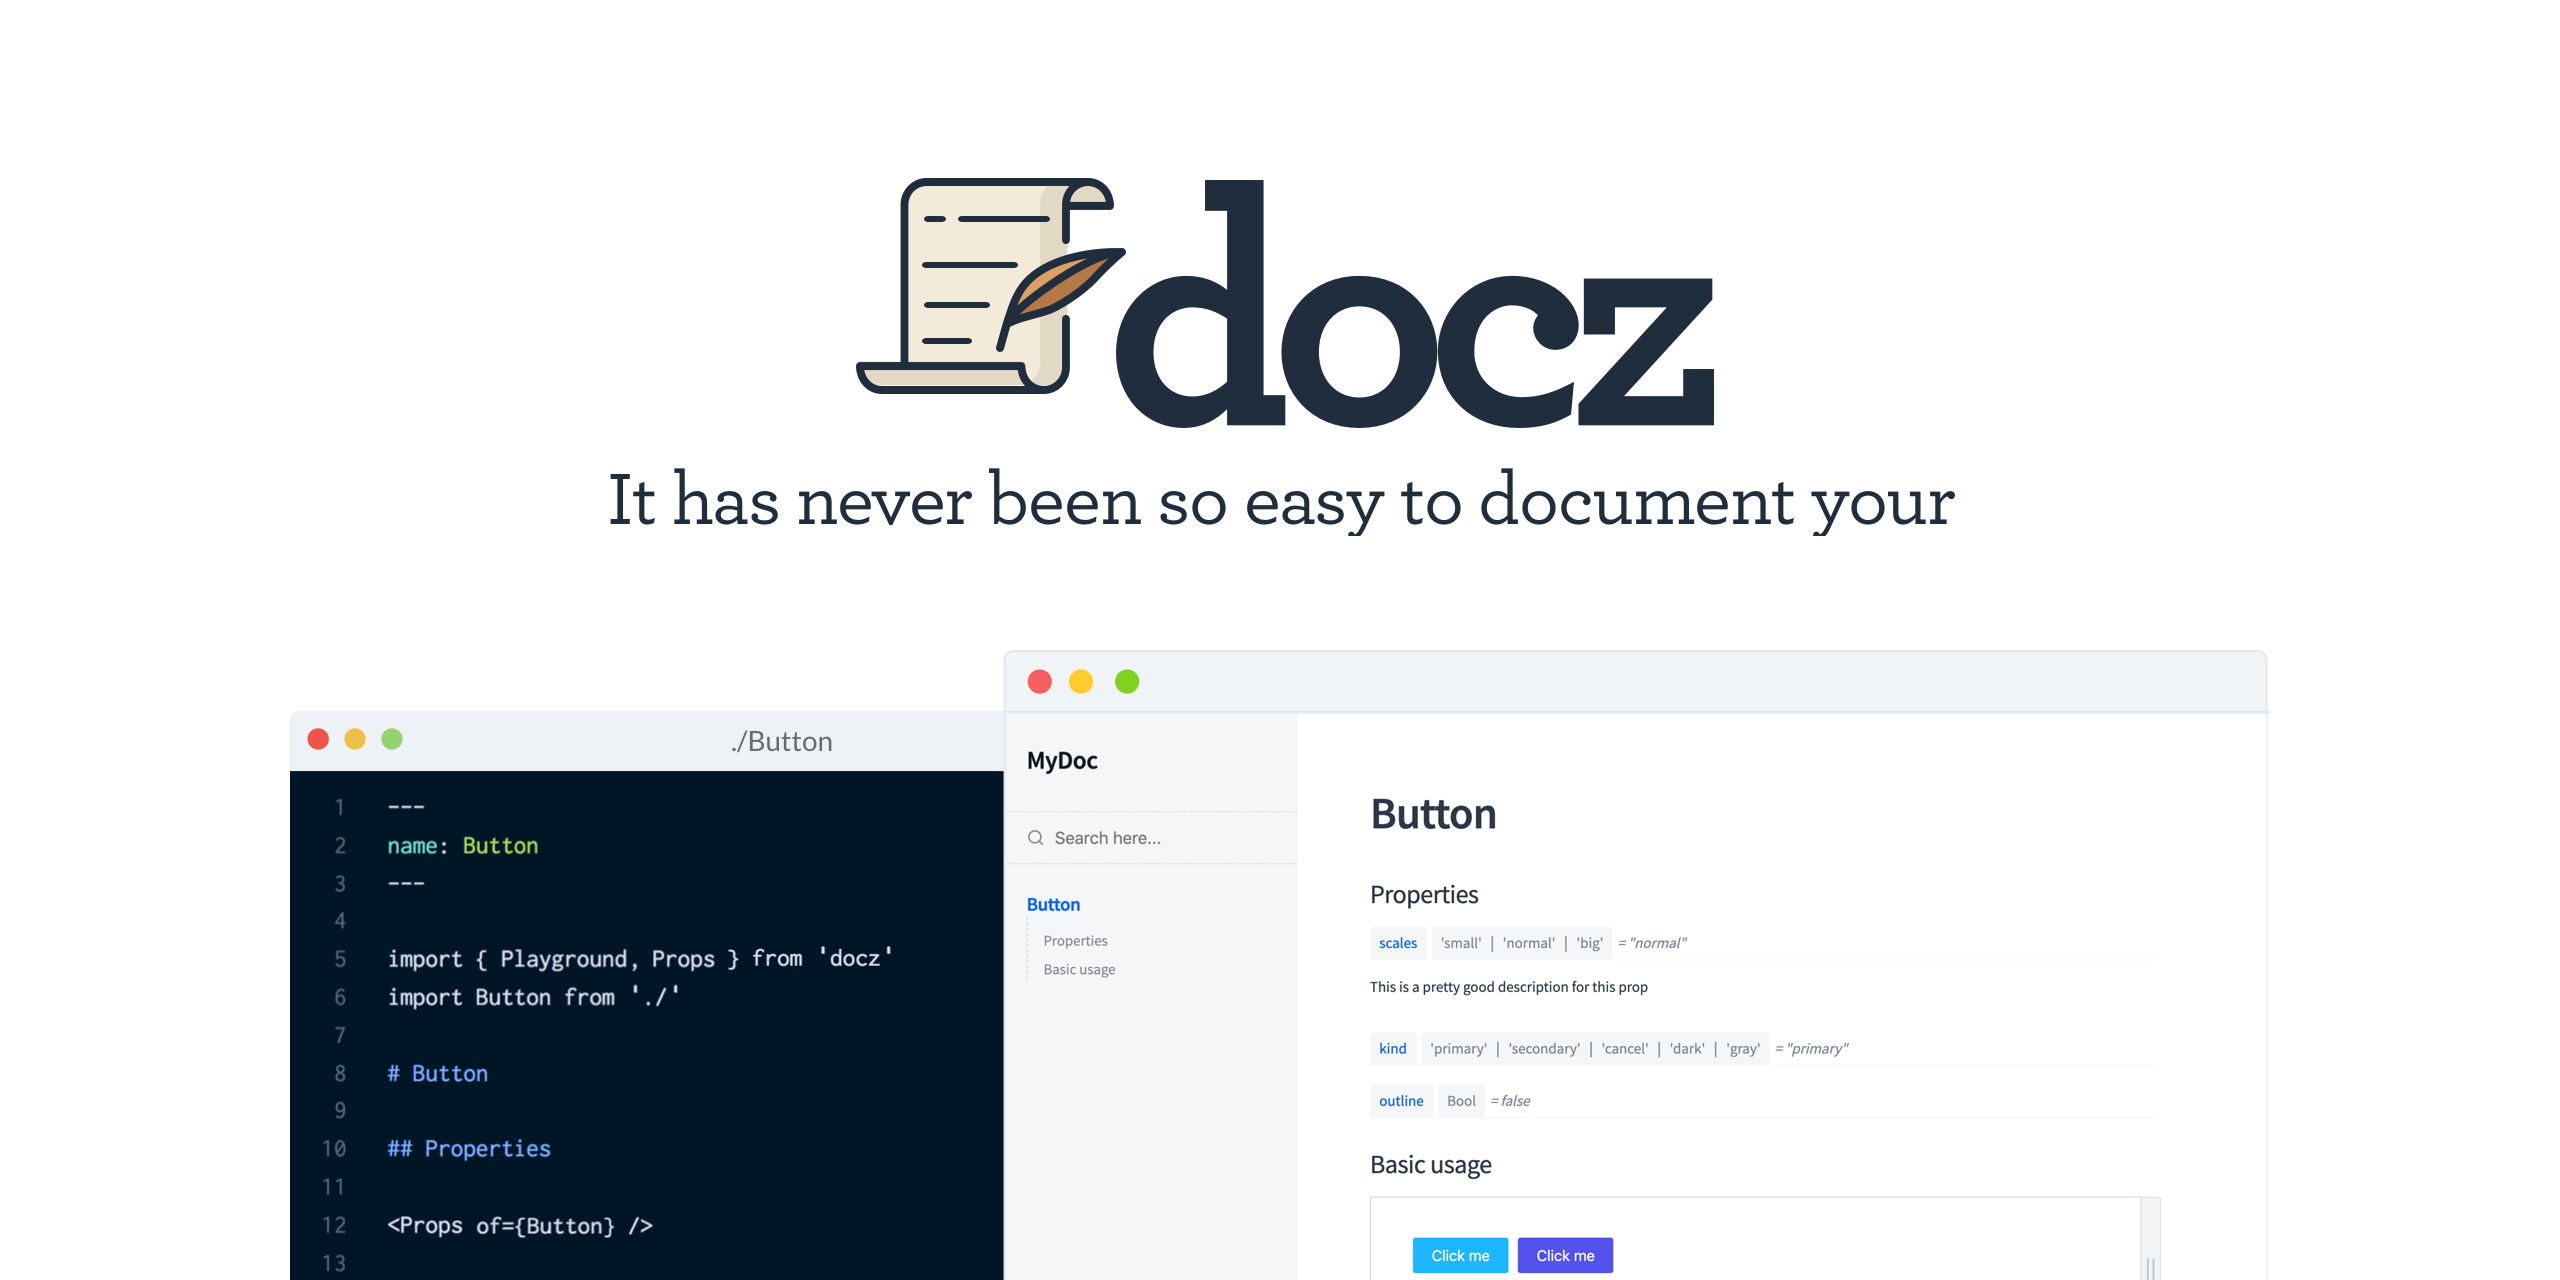 GitHub - doczjs/docz: ✍🏻It has never been so easy to